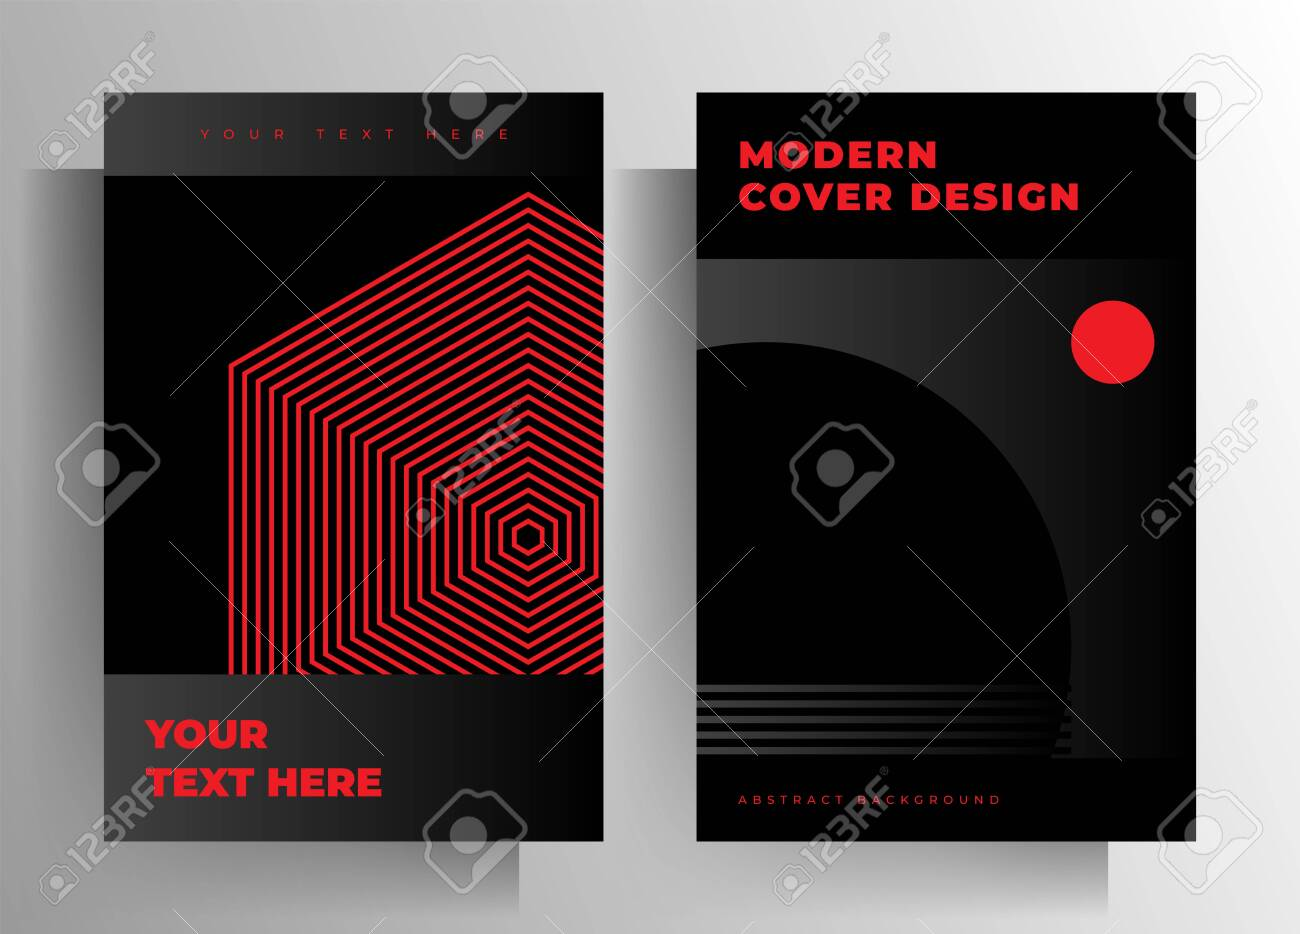 Cover for a book, magazine, brochure, catalog, booklet, poster. Geometric black and red design template set. - 153323584